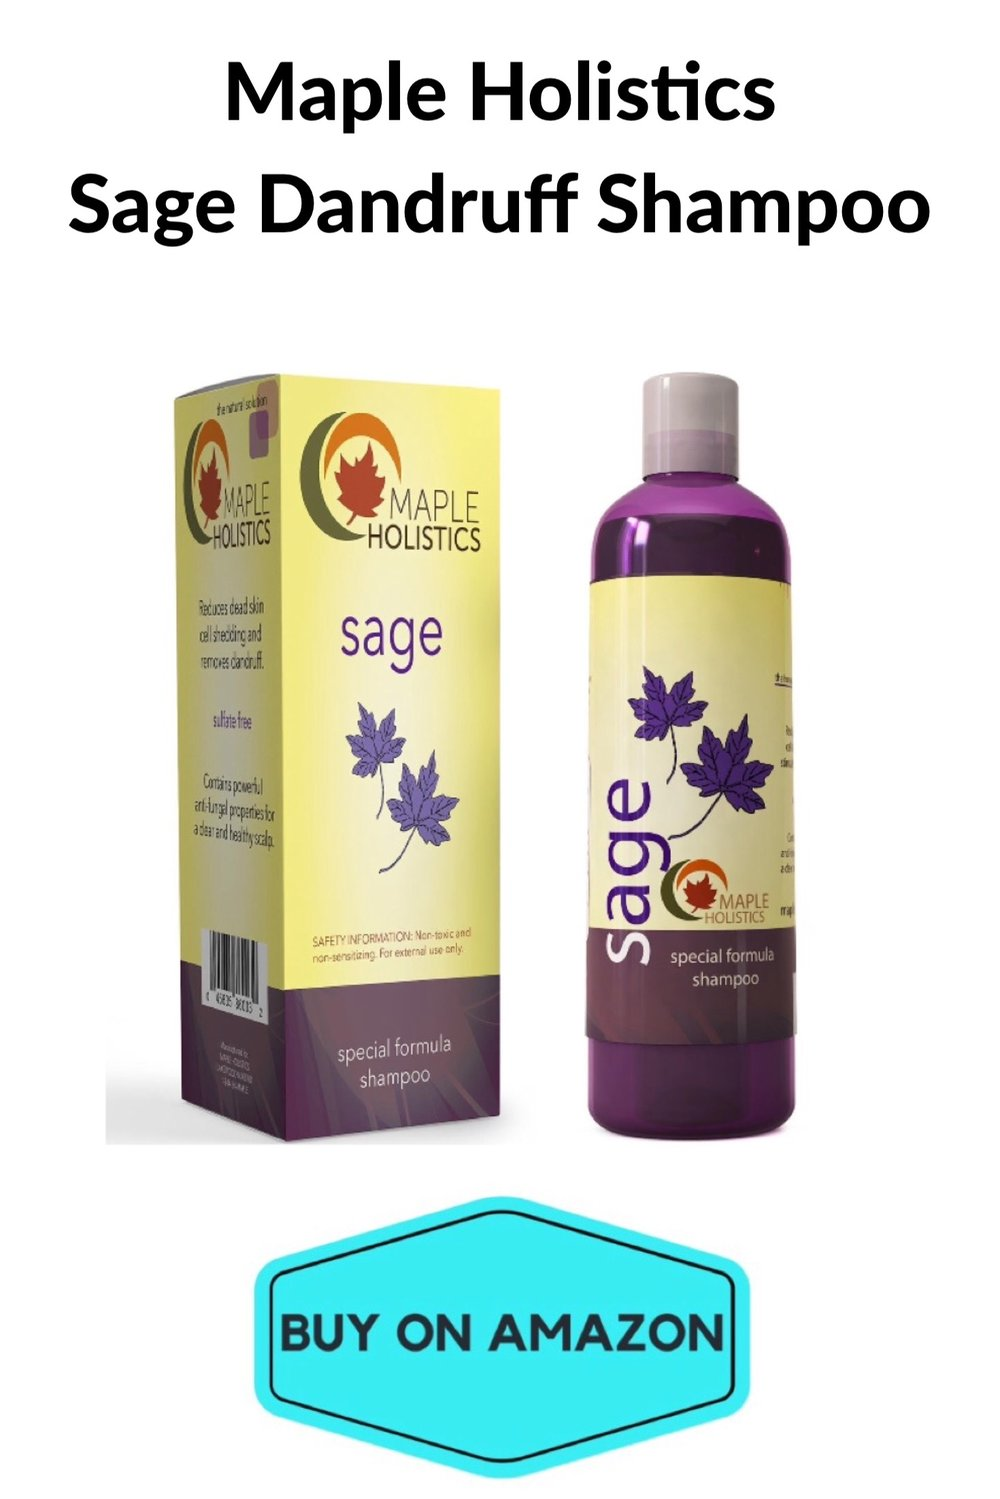 Maple Holistics Sage Dandruff Shampoo